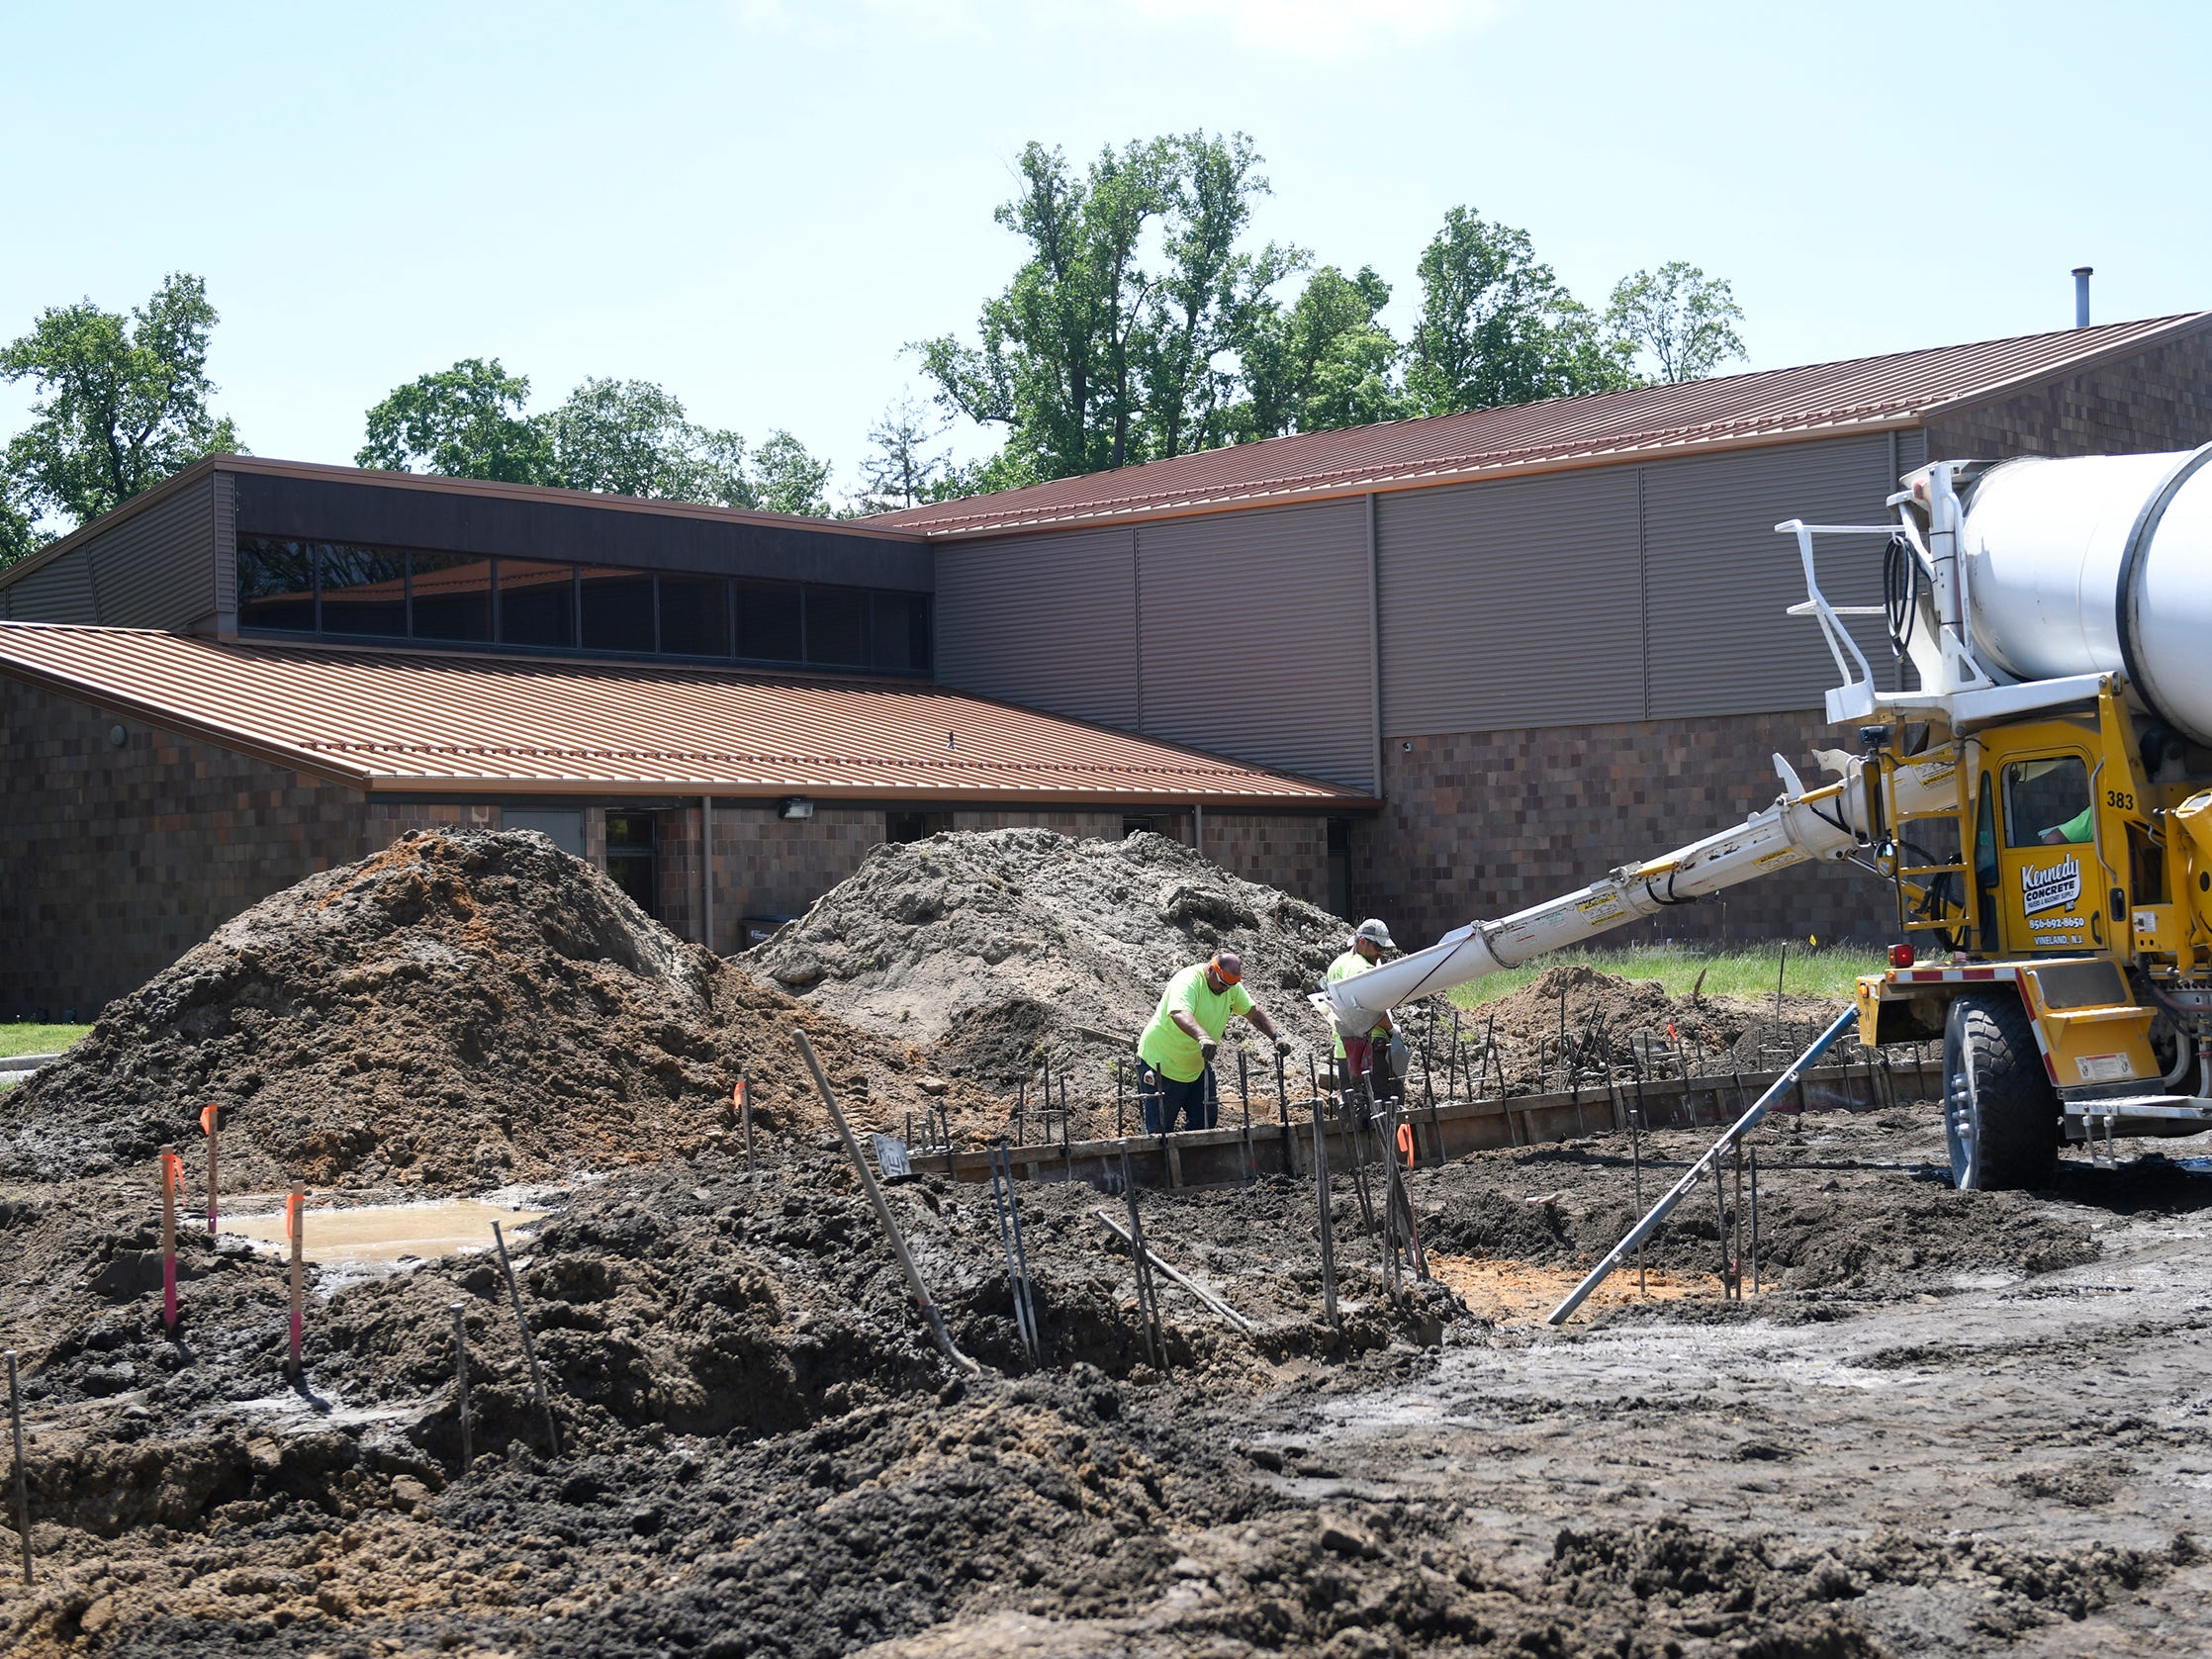 Crews from Charles Marandino concrete worked on curbing for the back parking lot of the Vineland Library on Tuesday, May 7, 2019.